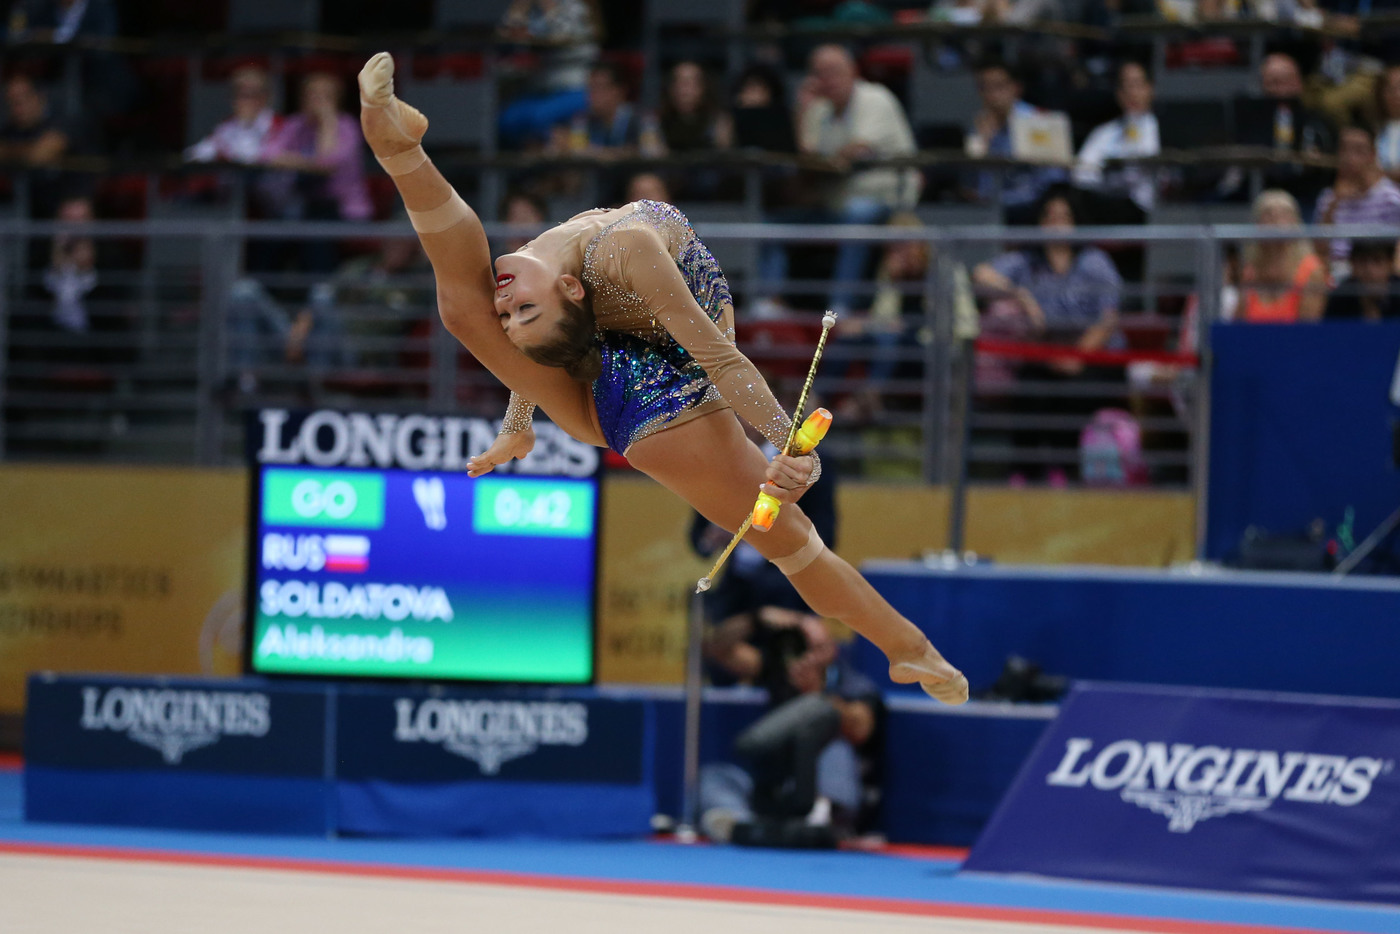 Longines Gymnastics Event: The Longines Prize for Elegance awarded to Aleksandra Soldatova at the 36th Rhythmic Gymnastics World Championships in Sofia 4